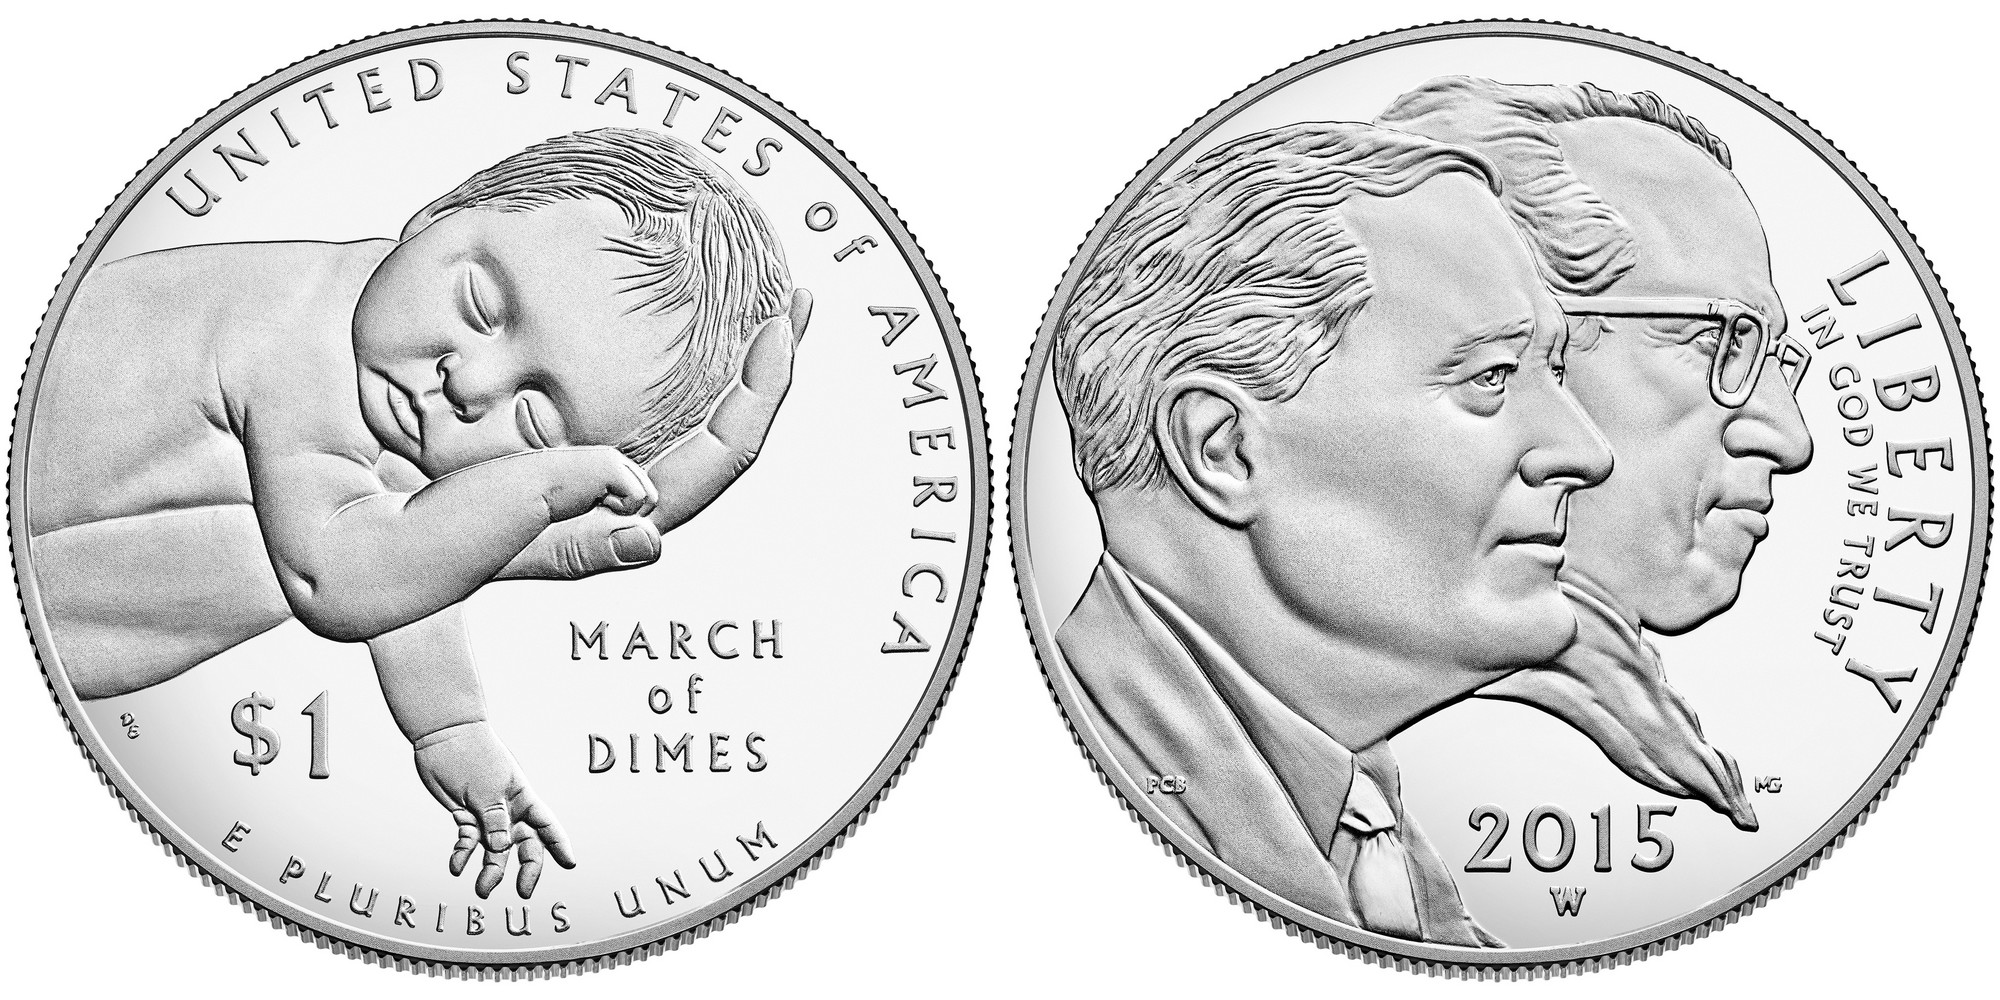 états-unis 2015 march of dimes.jpg